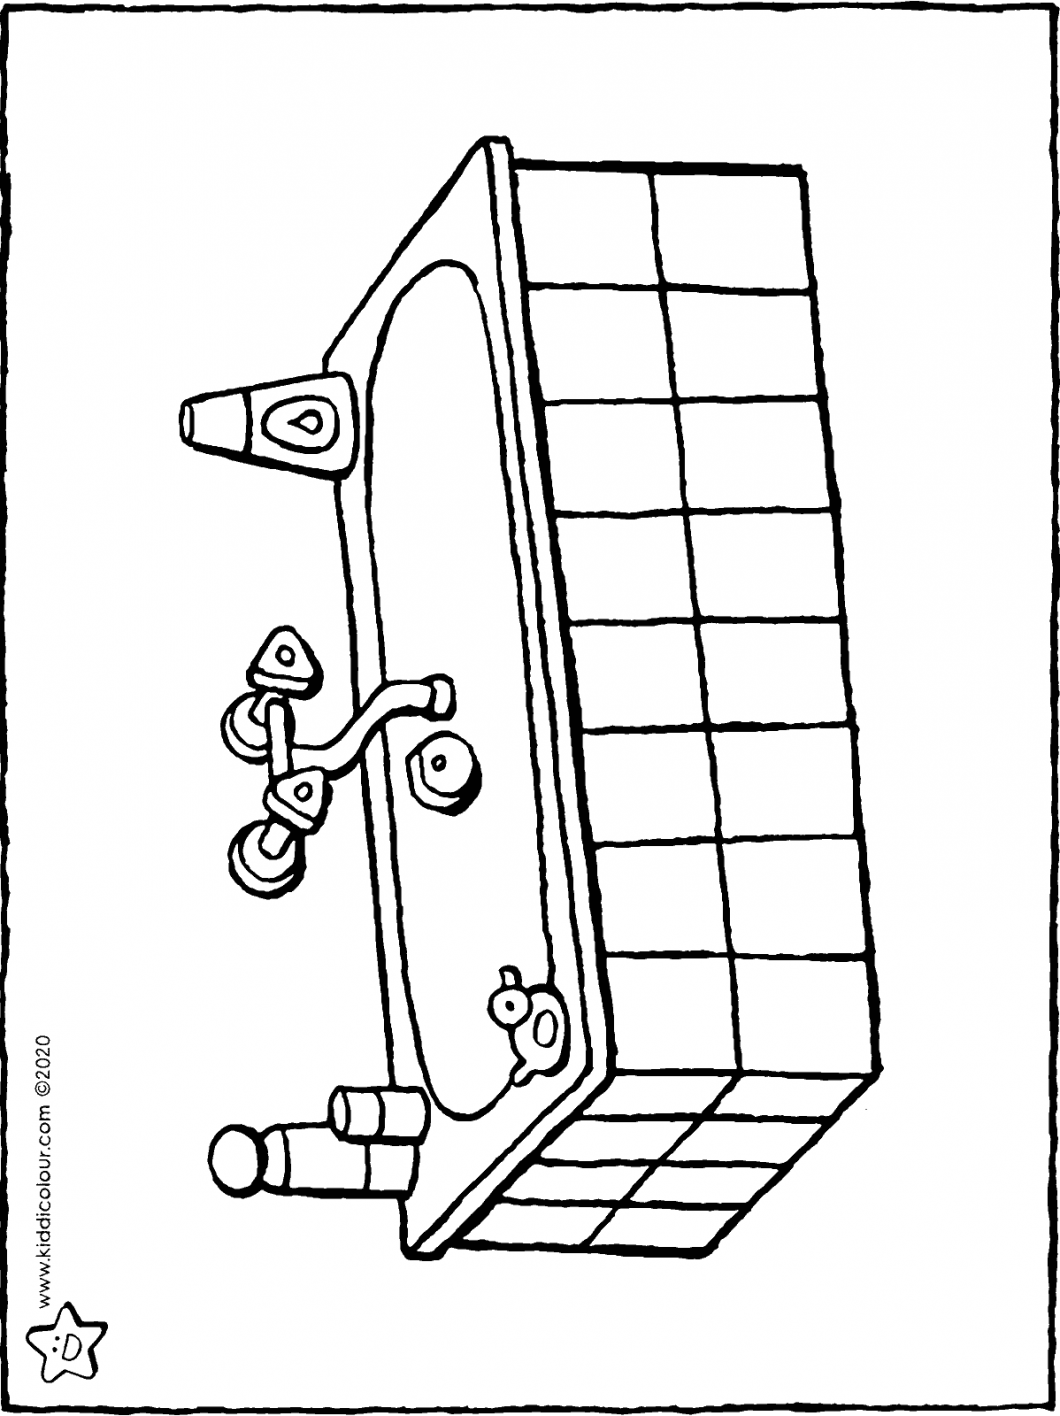 bath colouring page drawing picture 01H